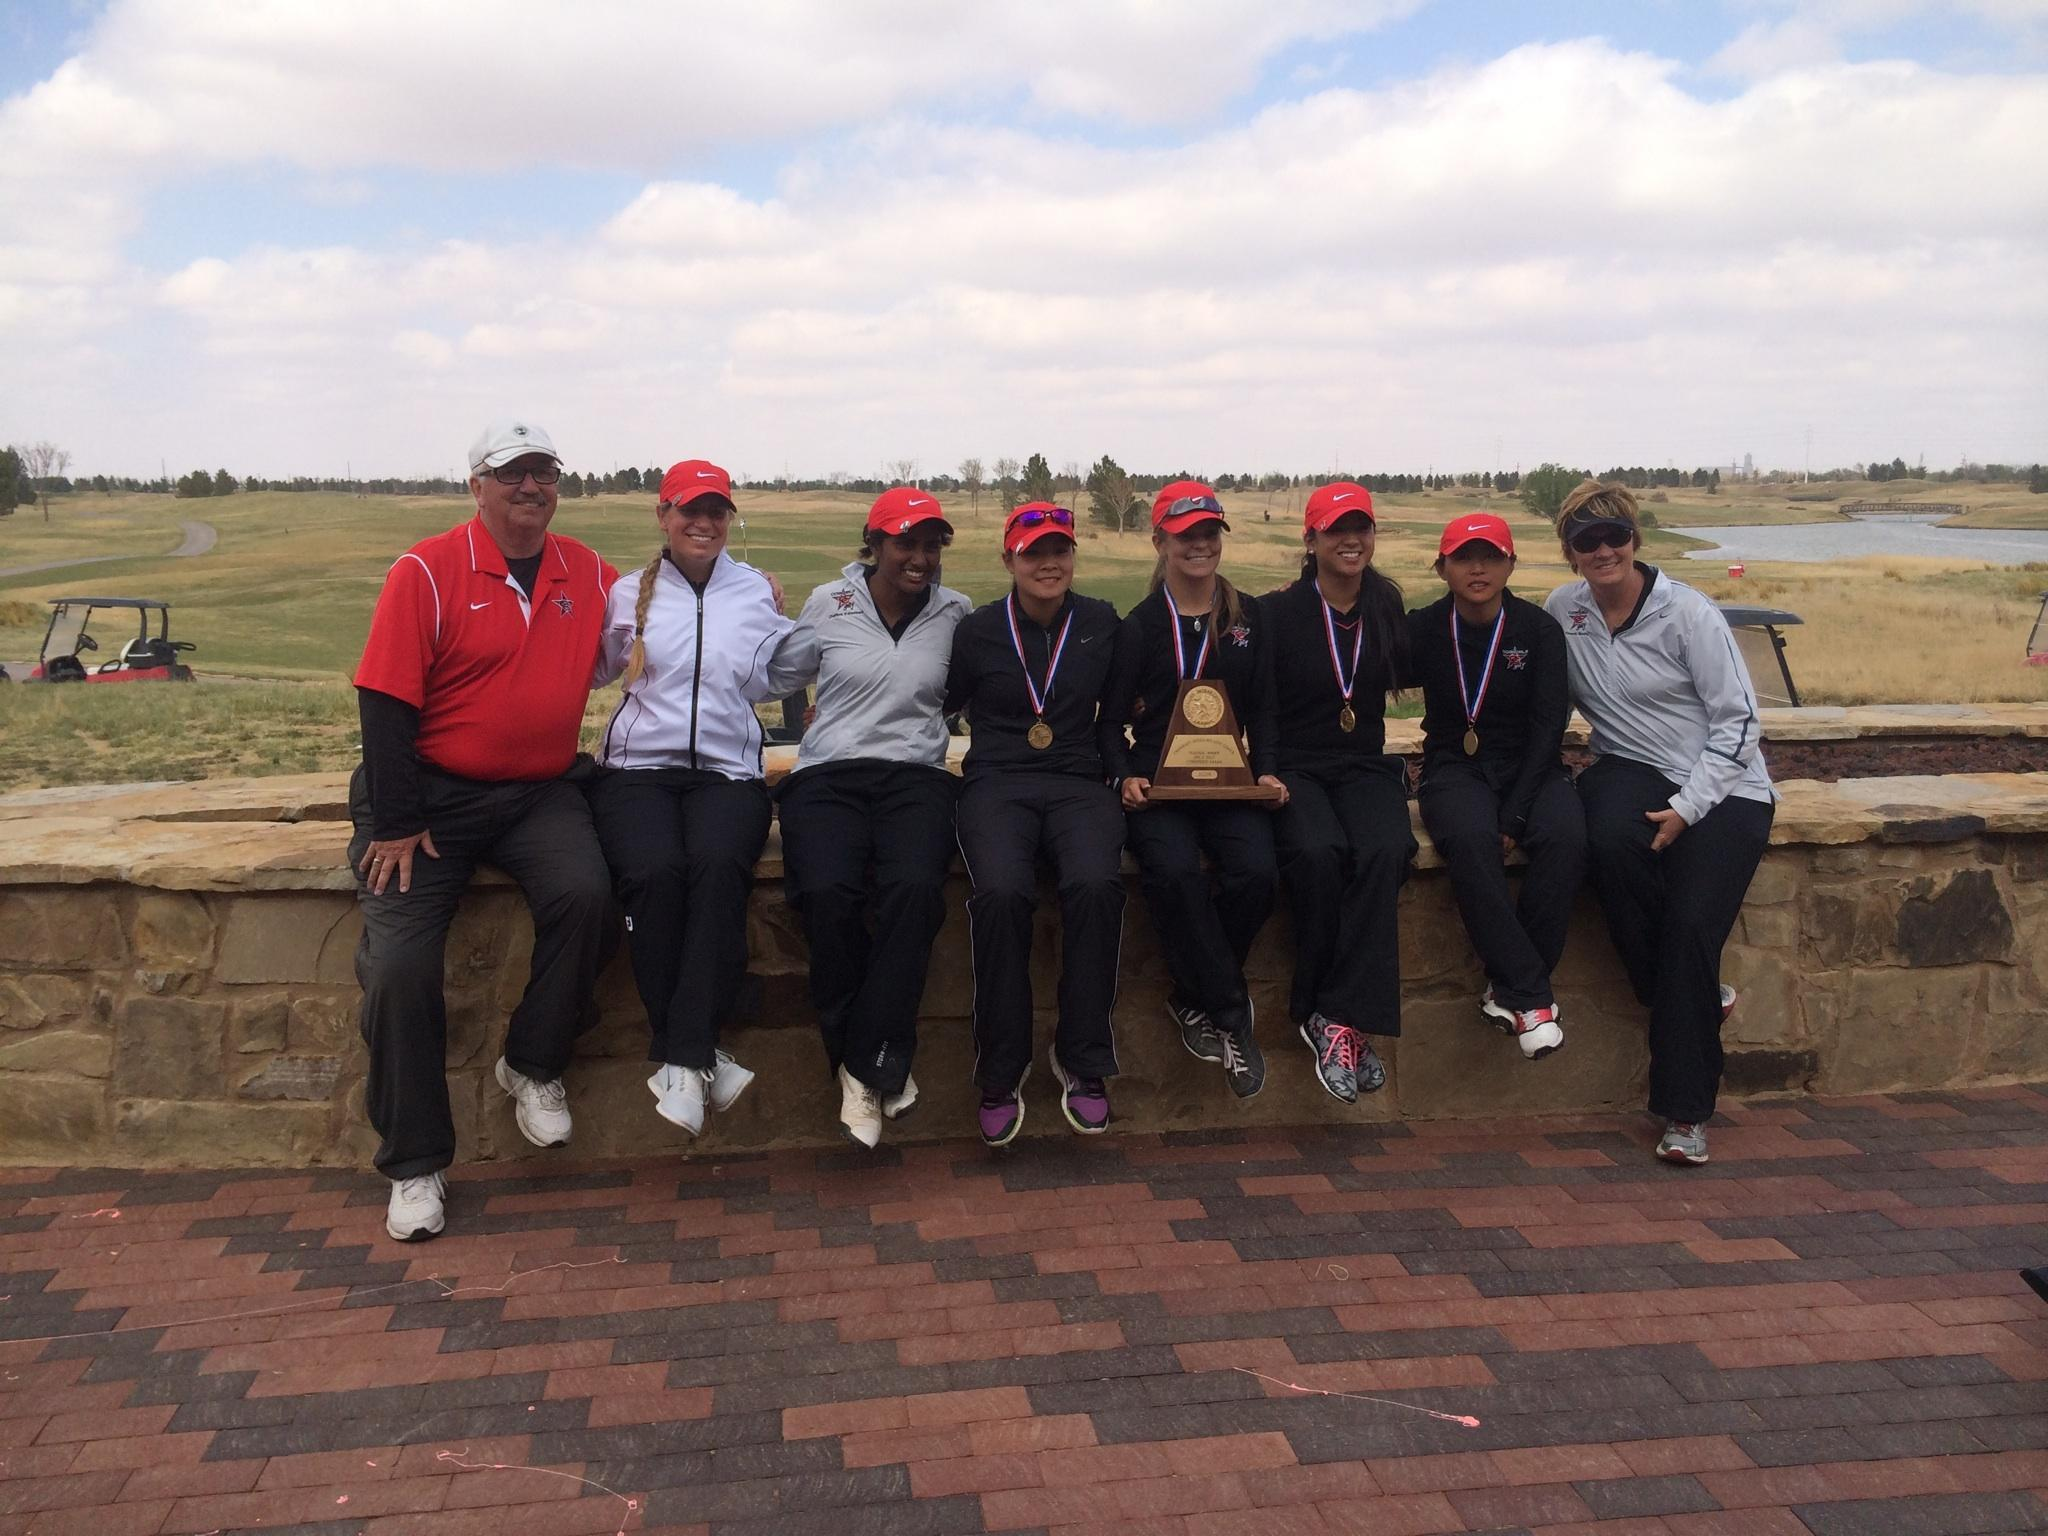 Coppell girls golf team took first place at the Region I tournament in Lubbock on Thursday, Apr. 20